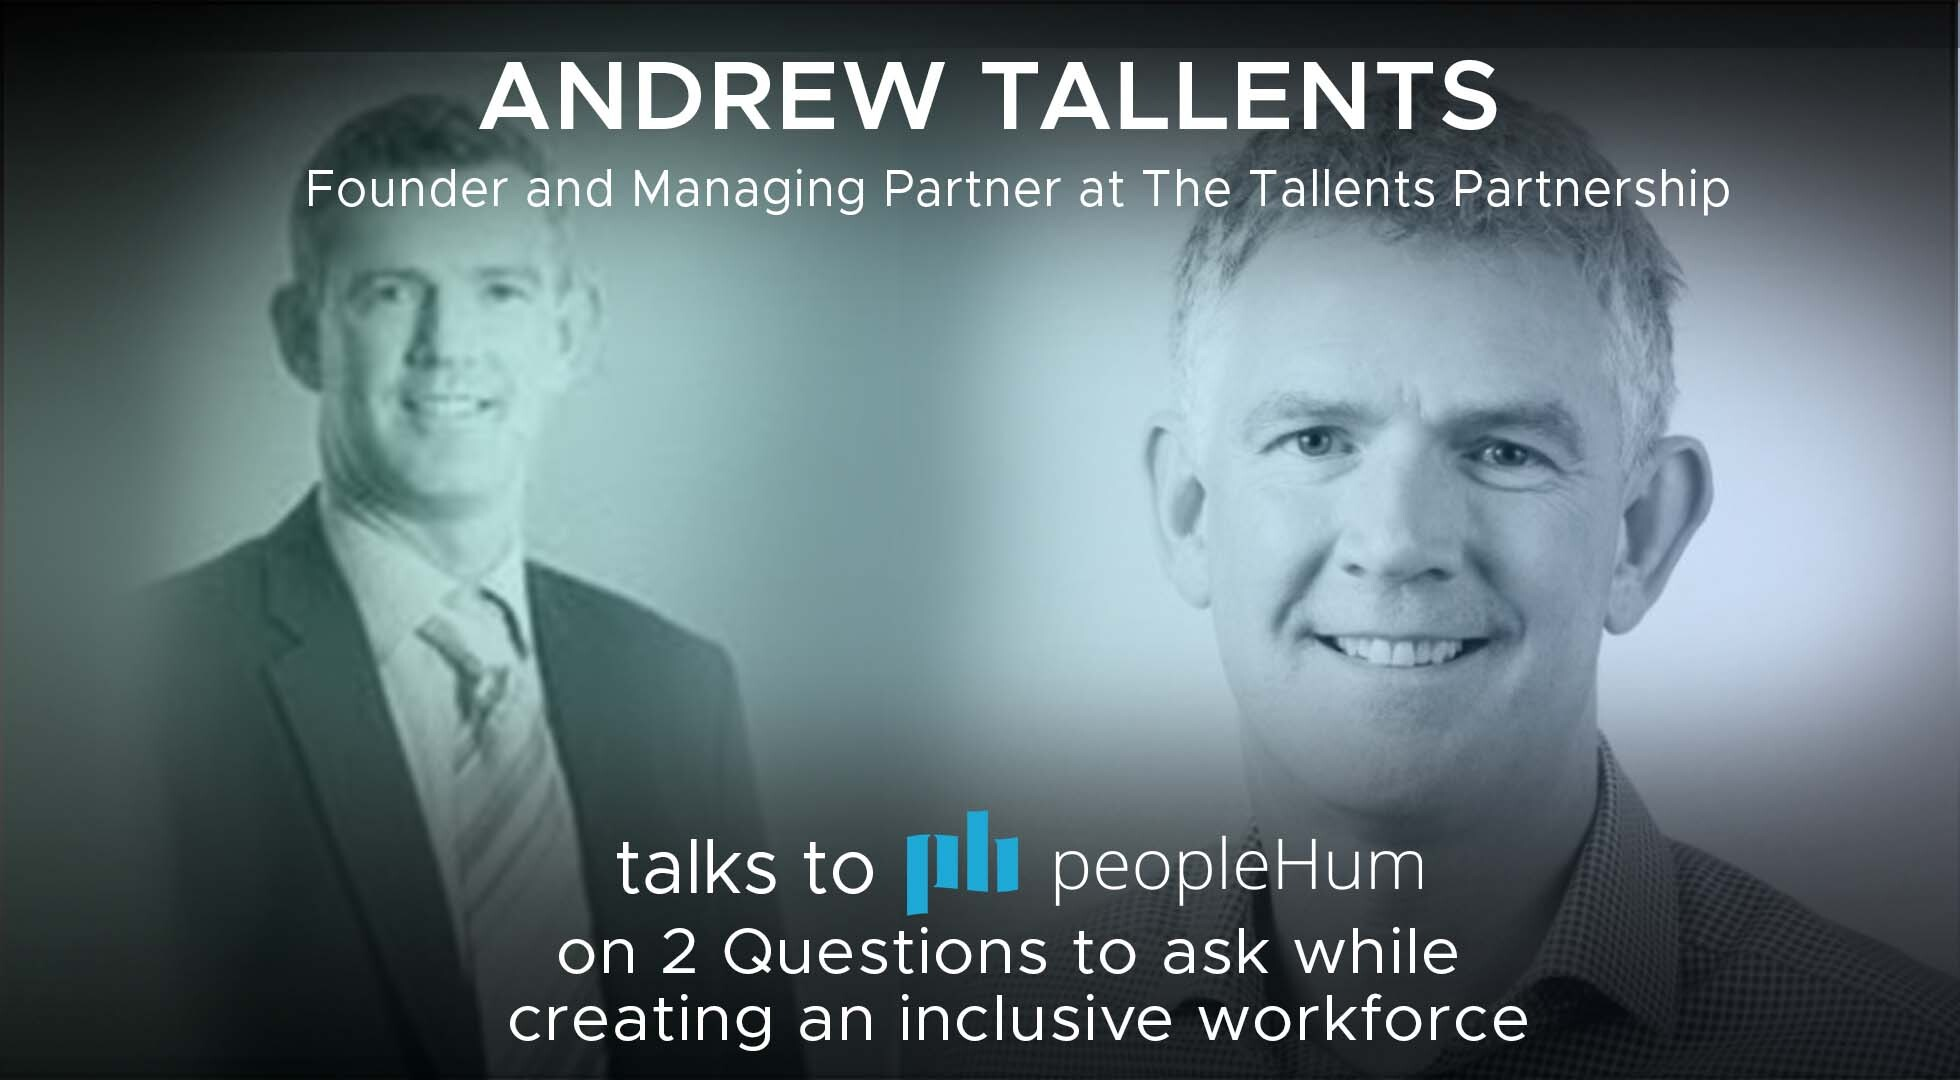 2 Questions to ask while creating an inclusive workforce  - Andrew Tallents [Interview]